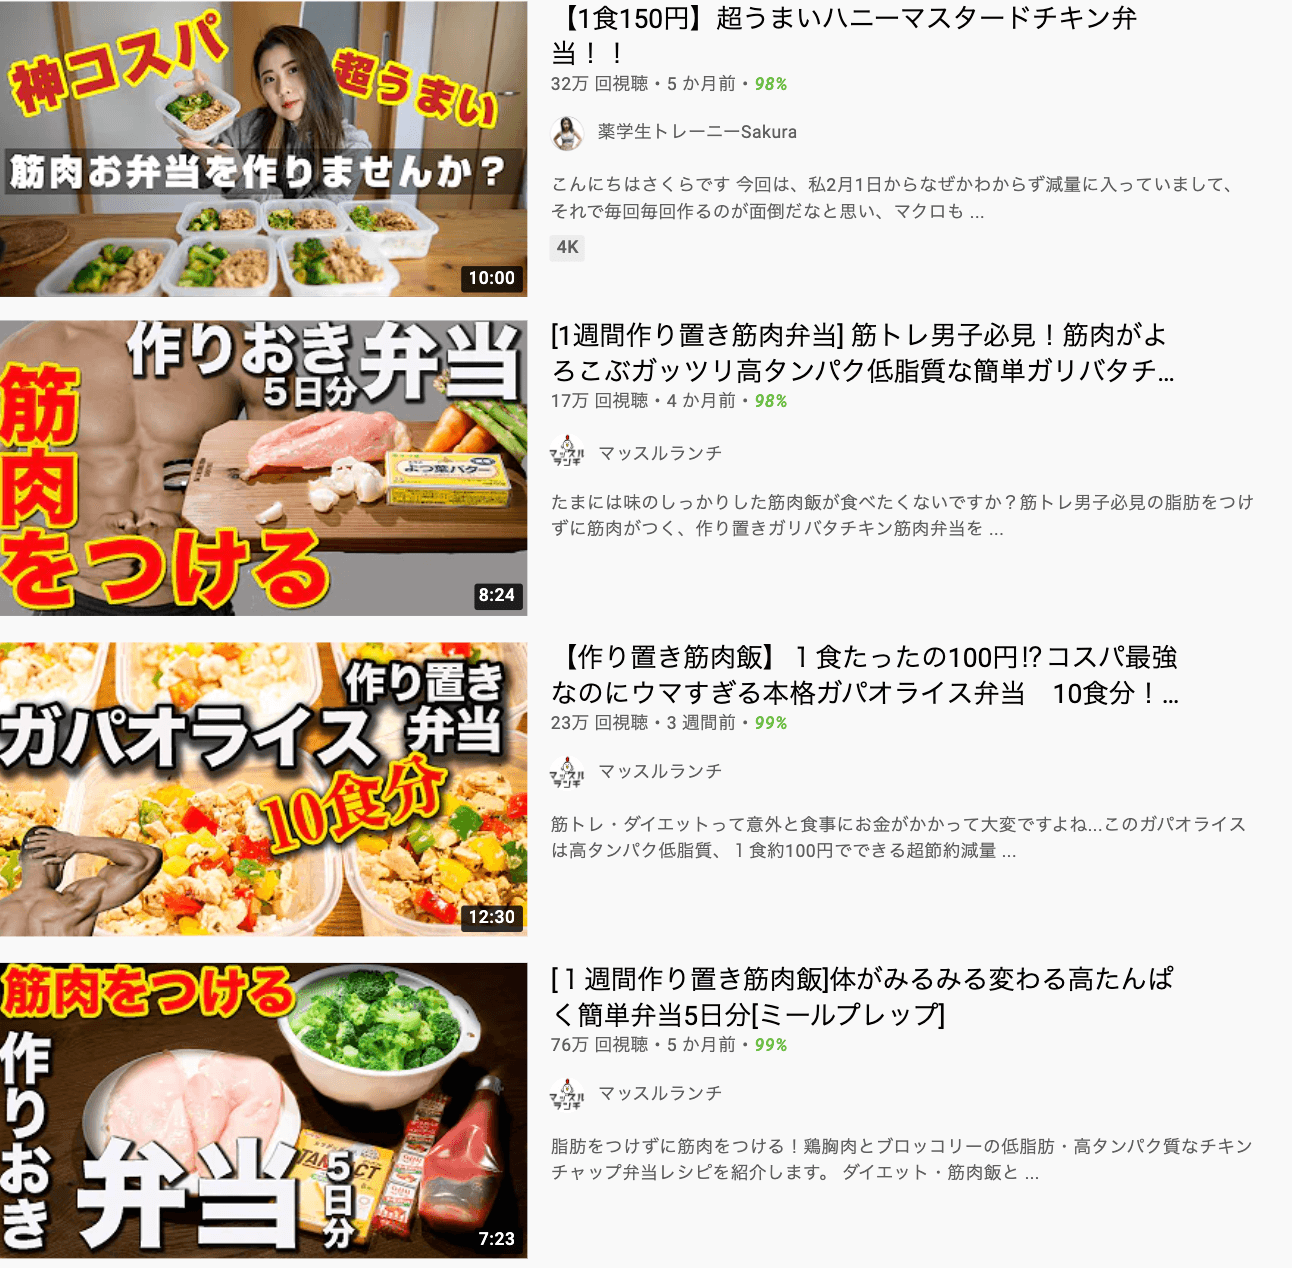 youtube-training lunch-top display